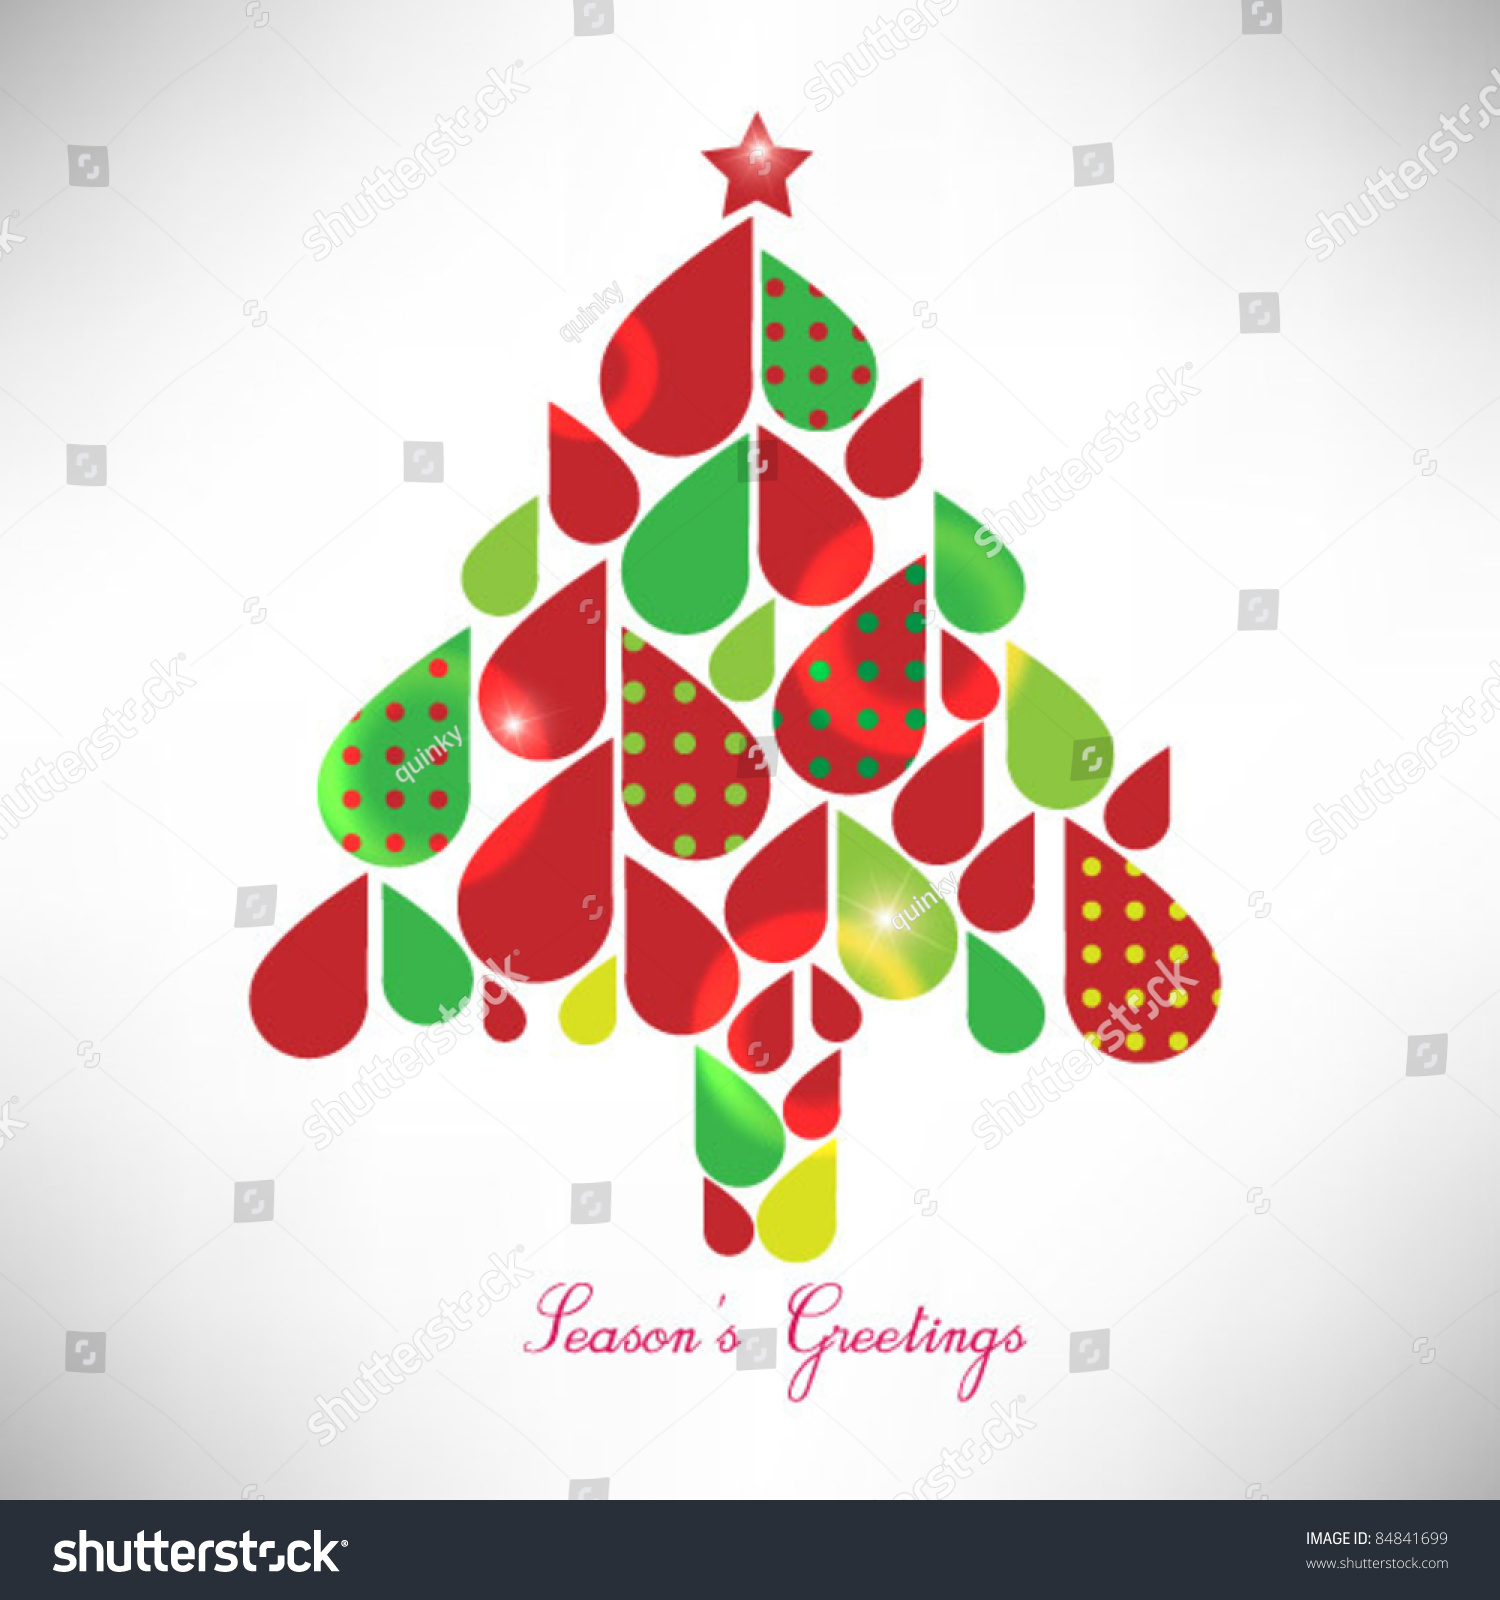 Cute Colorful Christmas Tree Design Stock Vector